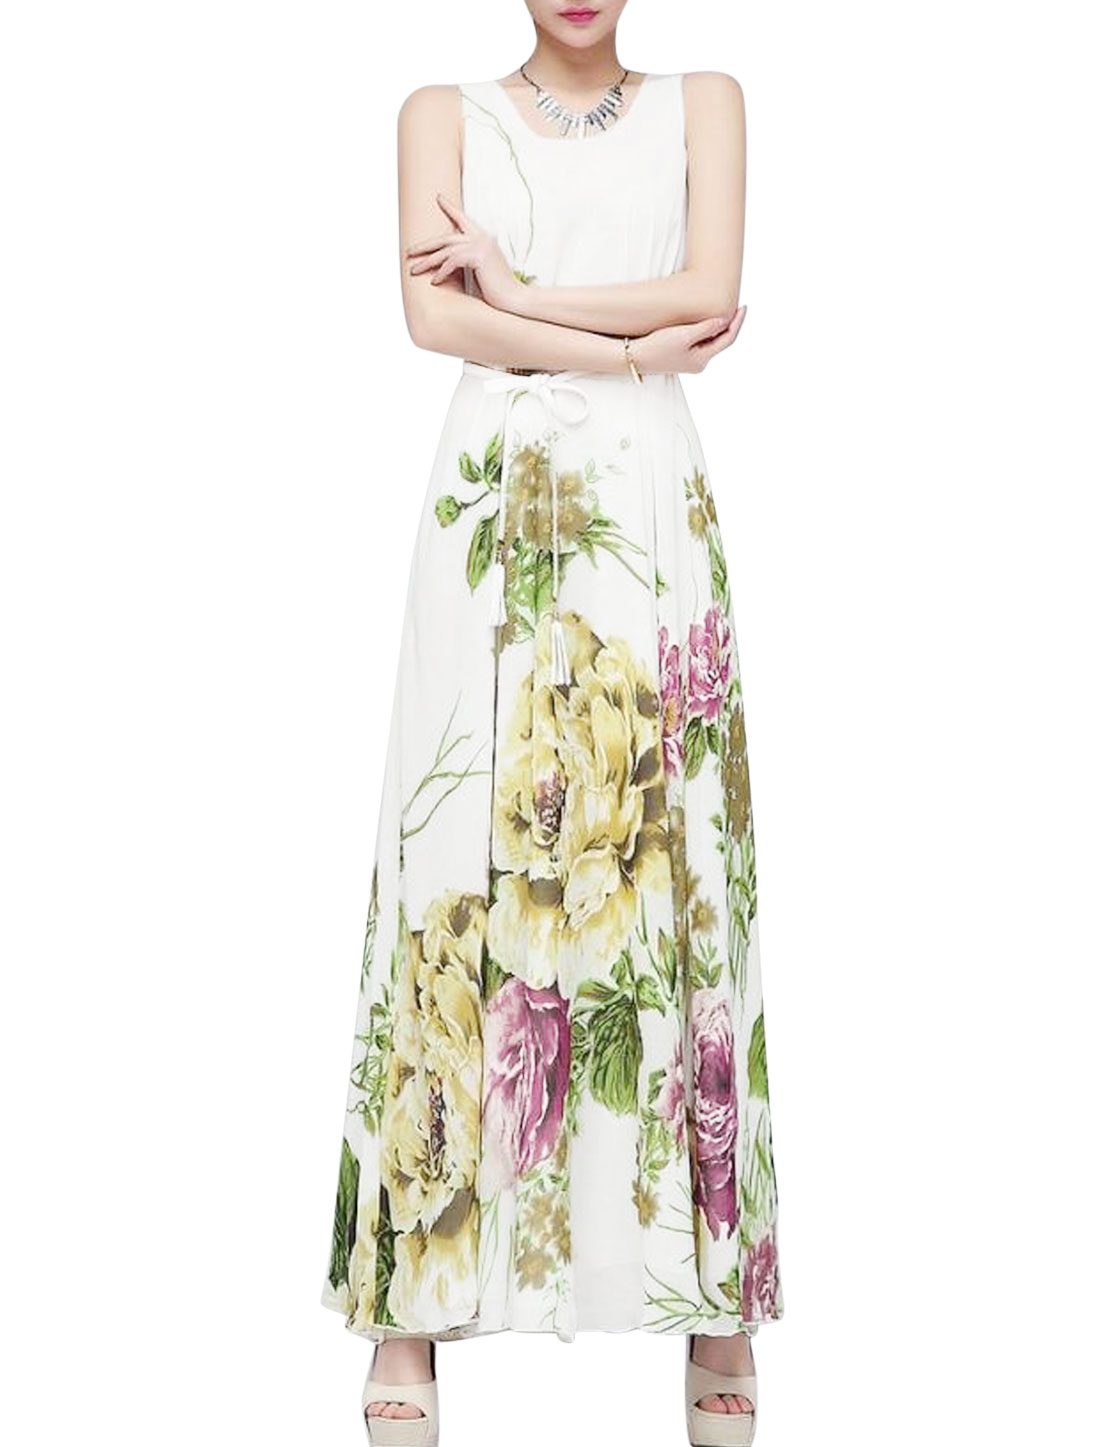 Lady Sleeveless Floral Prints Fully Lined Long Dress w Waist String White M